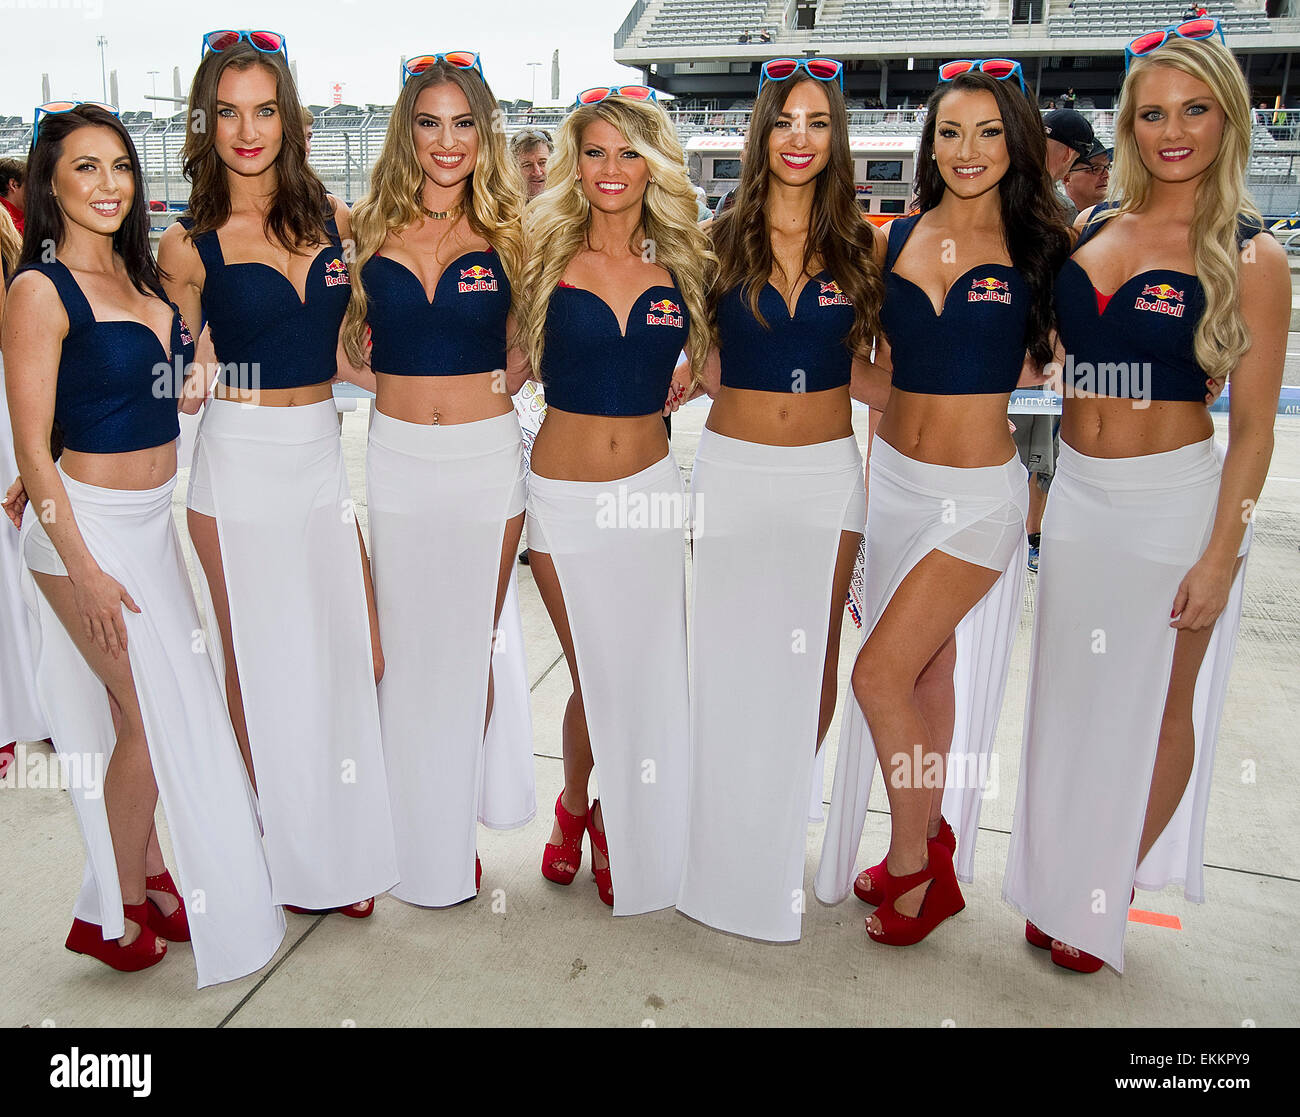 Austin, Texas, USA. 11th April, 2015. Red Bull Grid Girls in action Stock Photo: 80955037 - Alamy